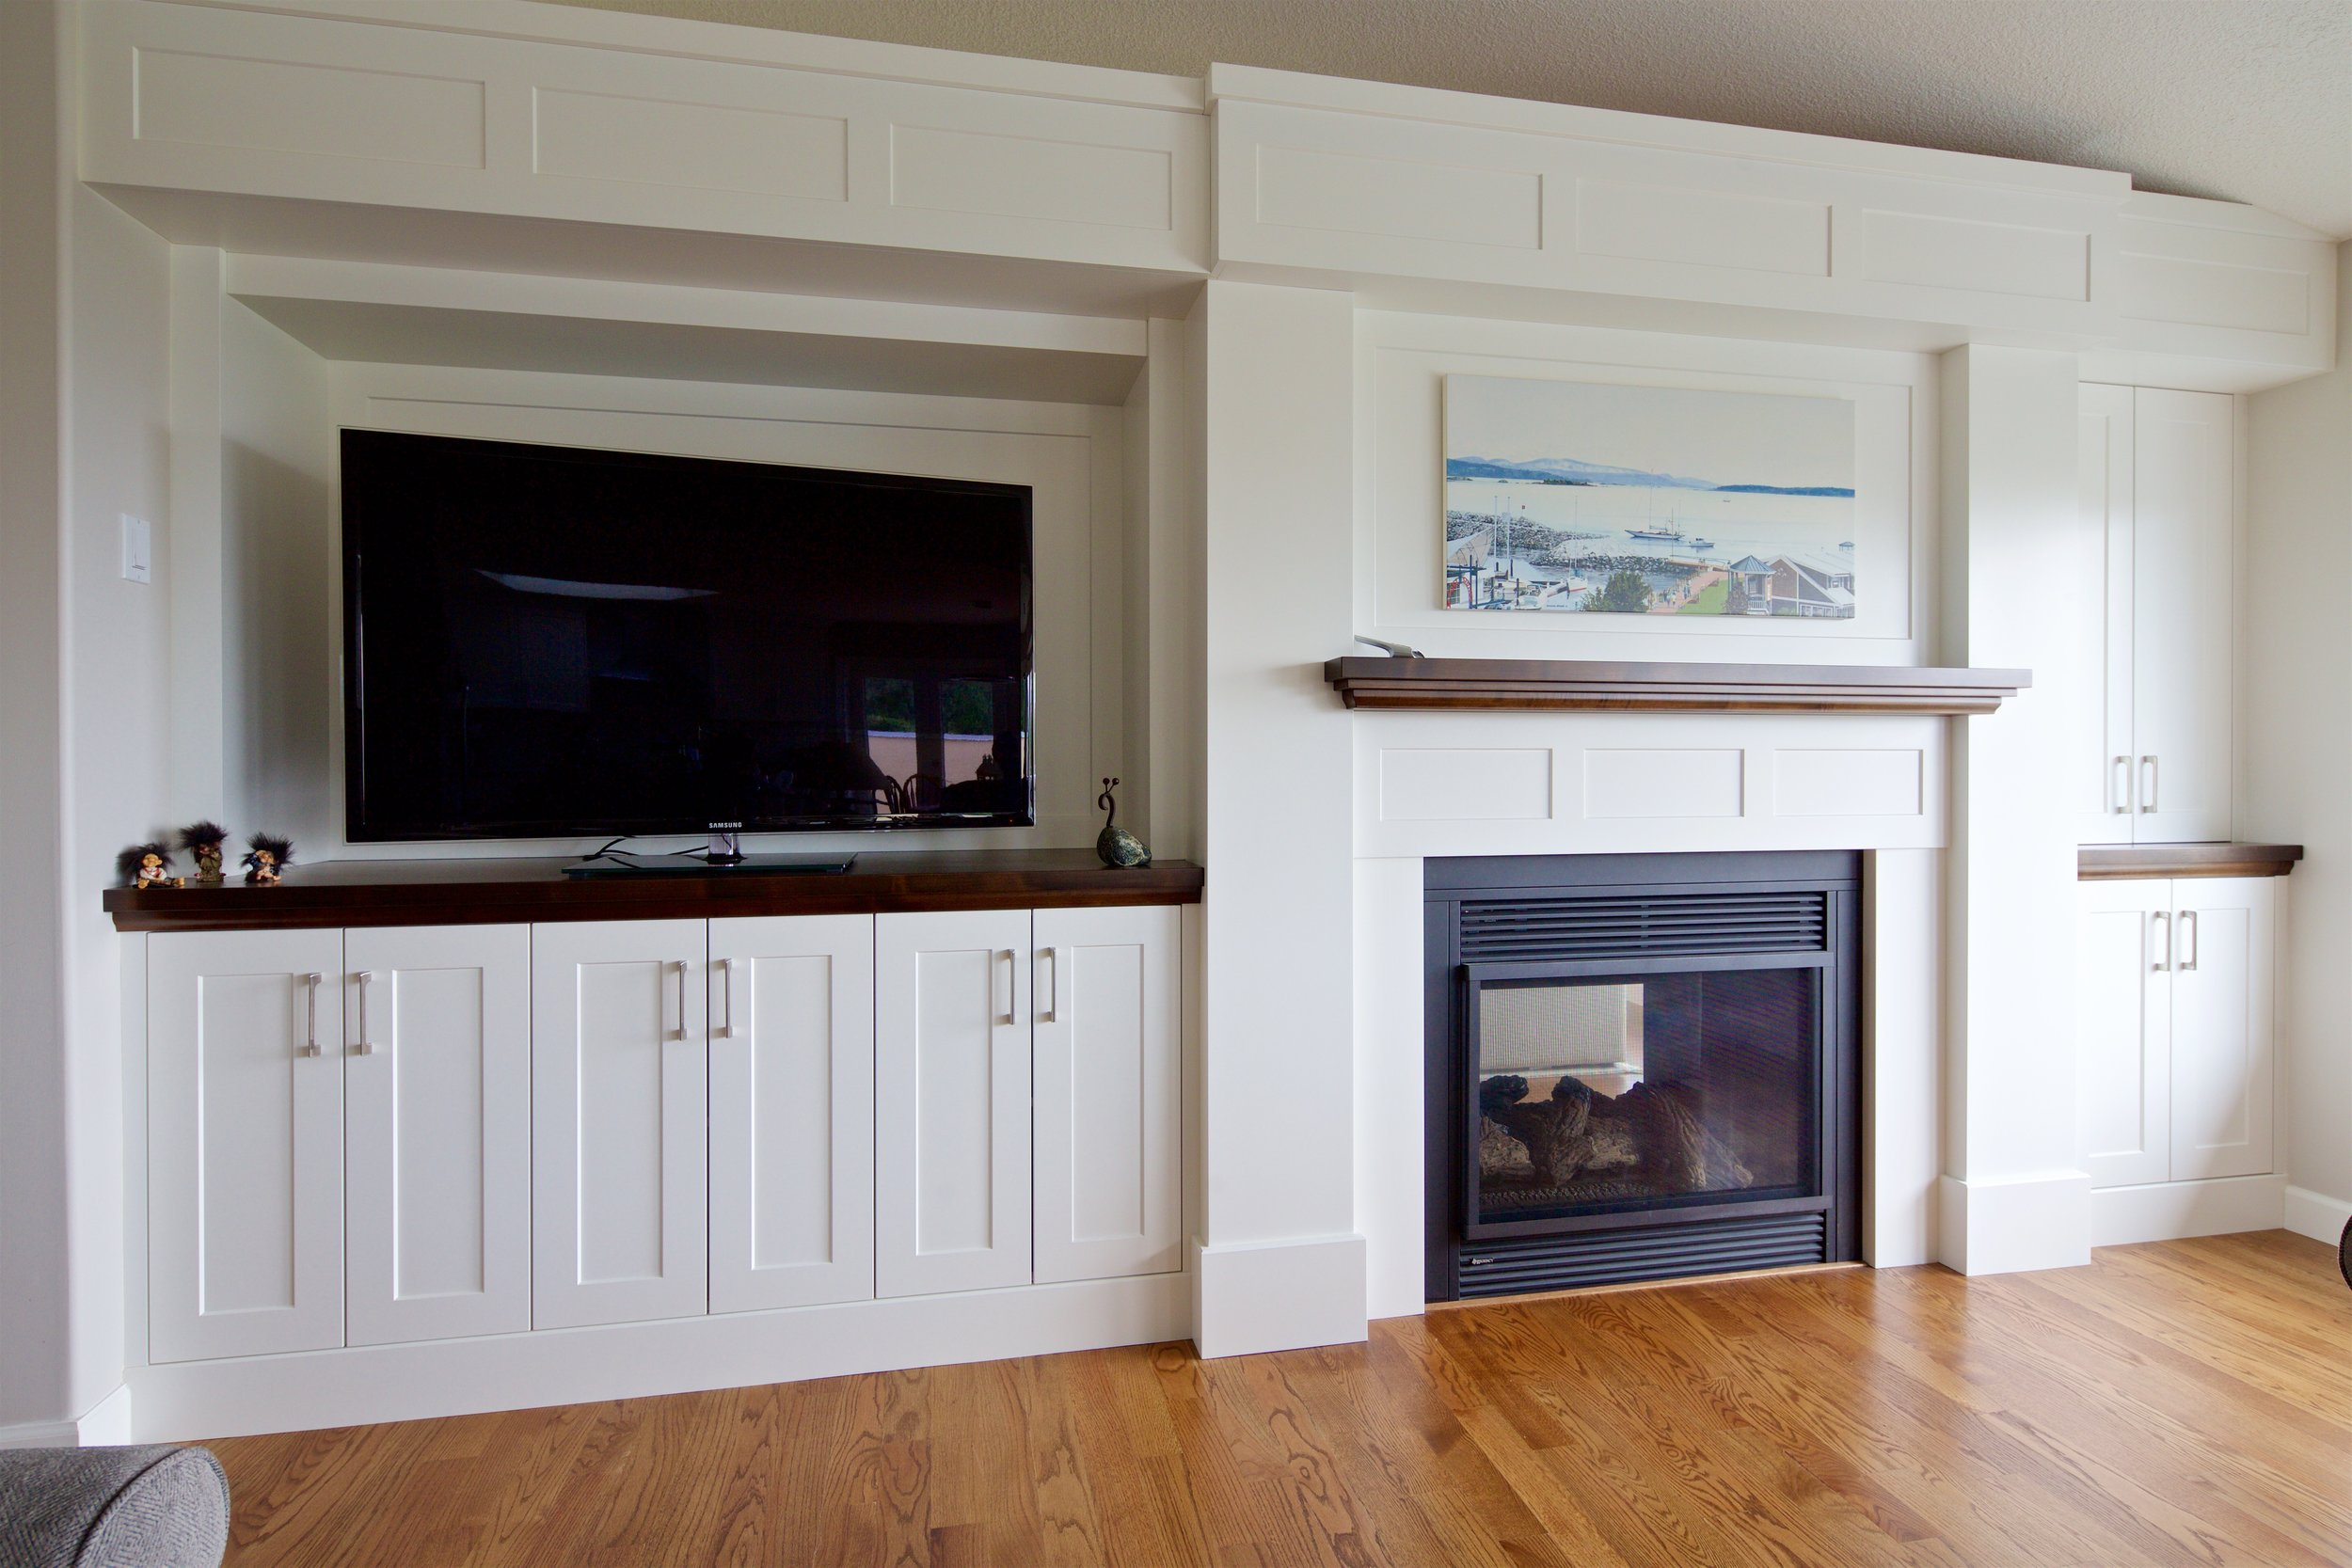 NORTH SAANICH FIREPLACE BUILT-IN